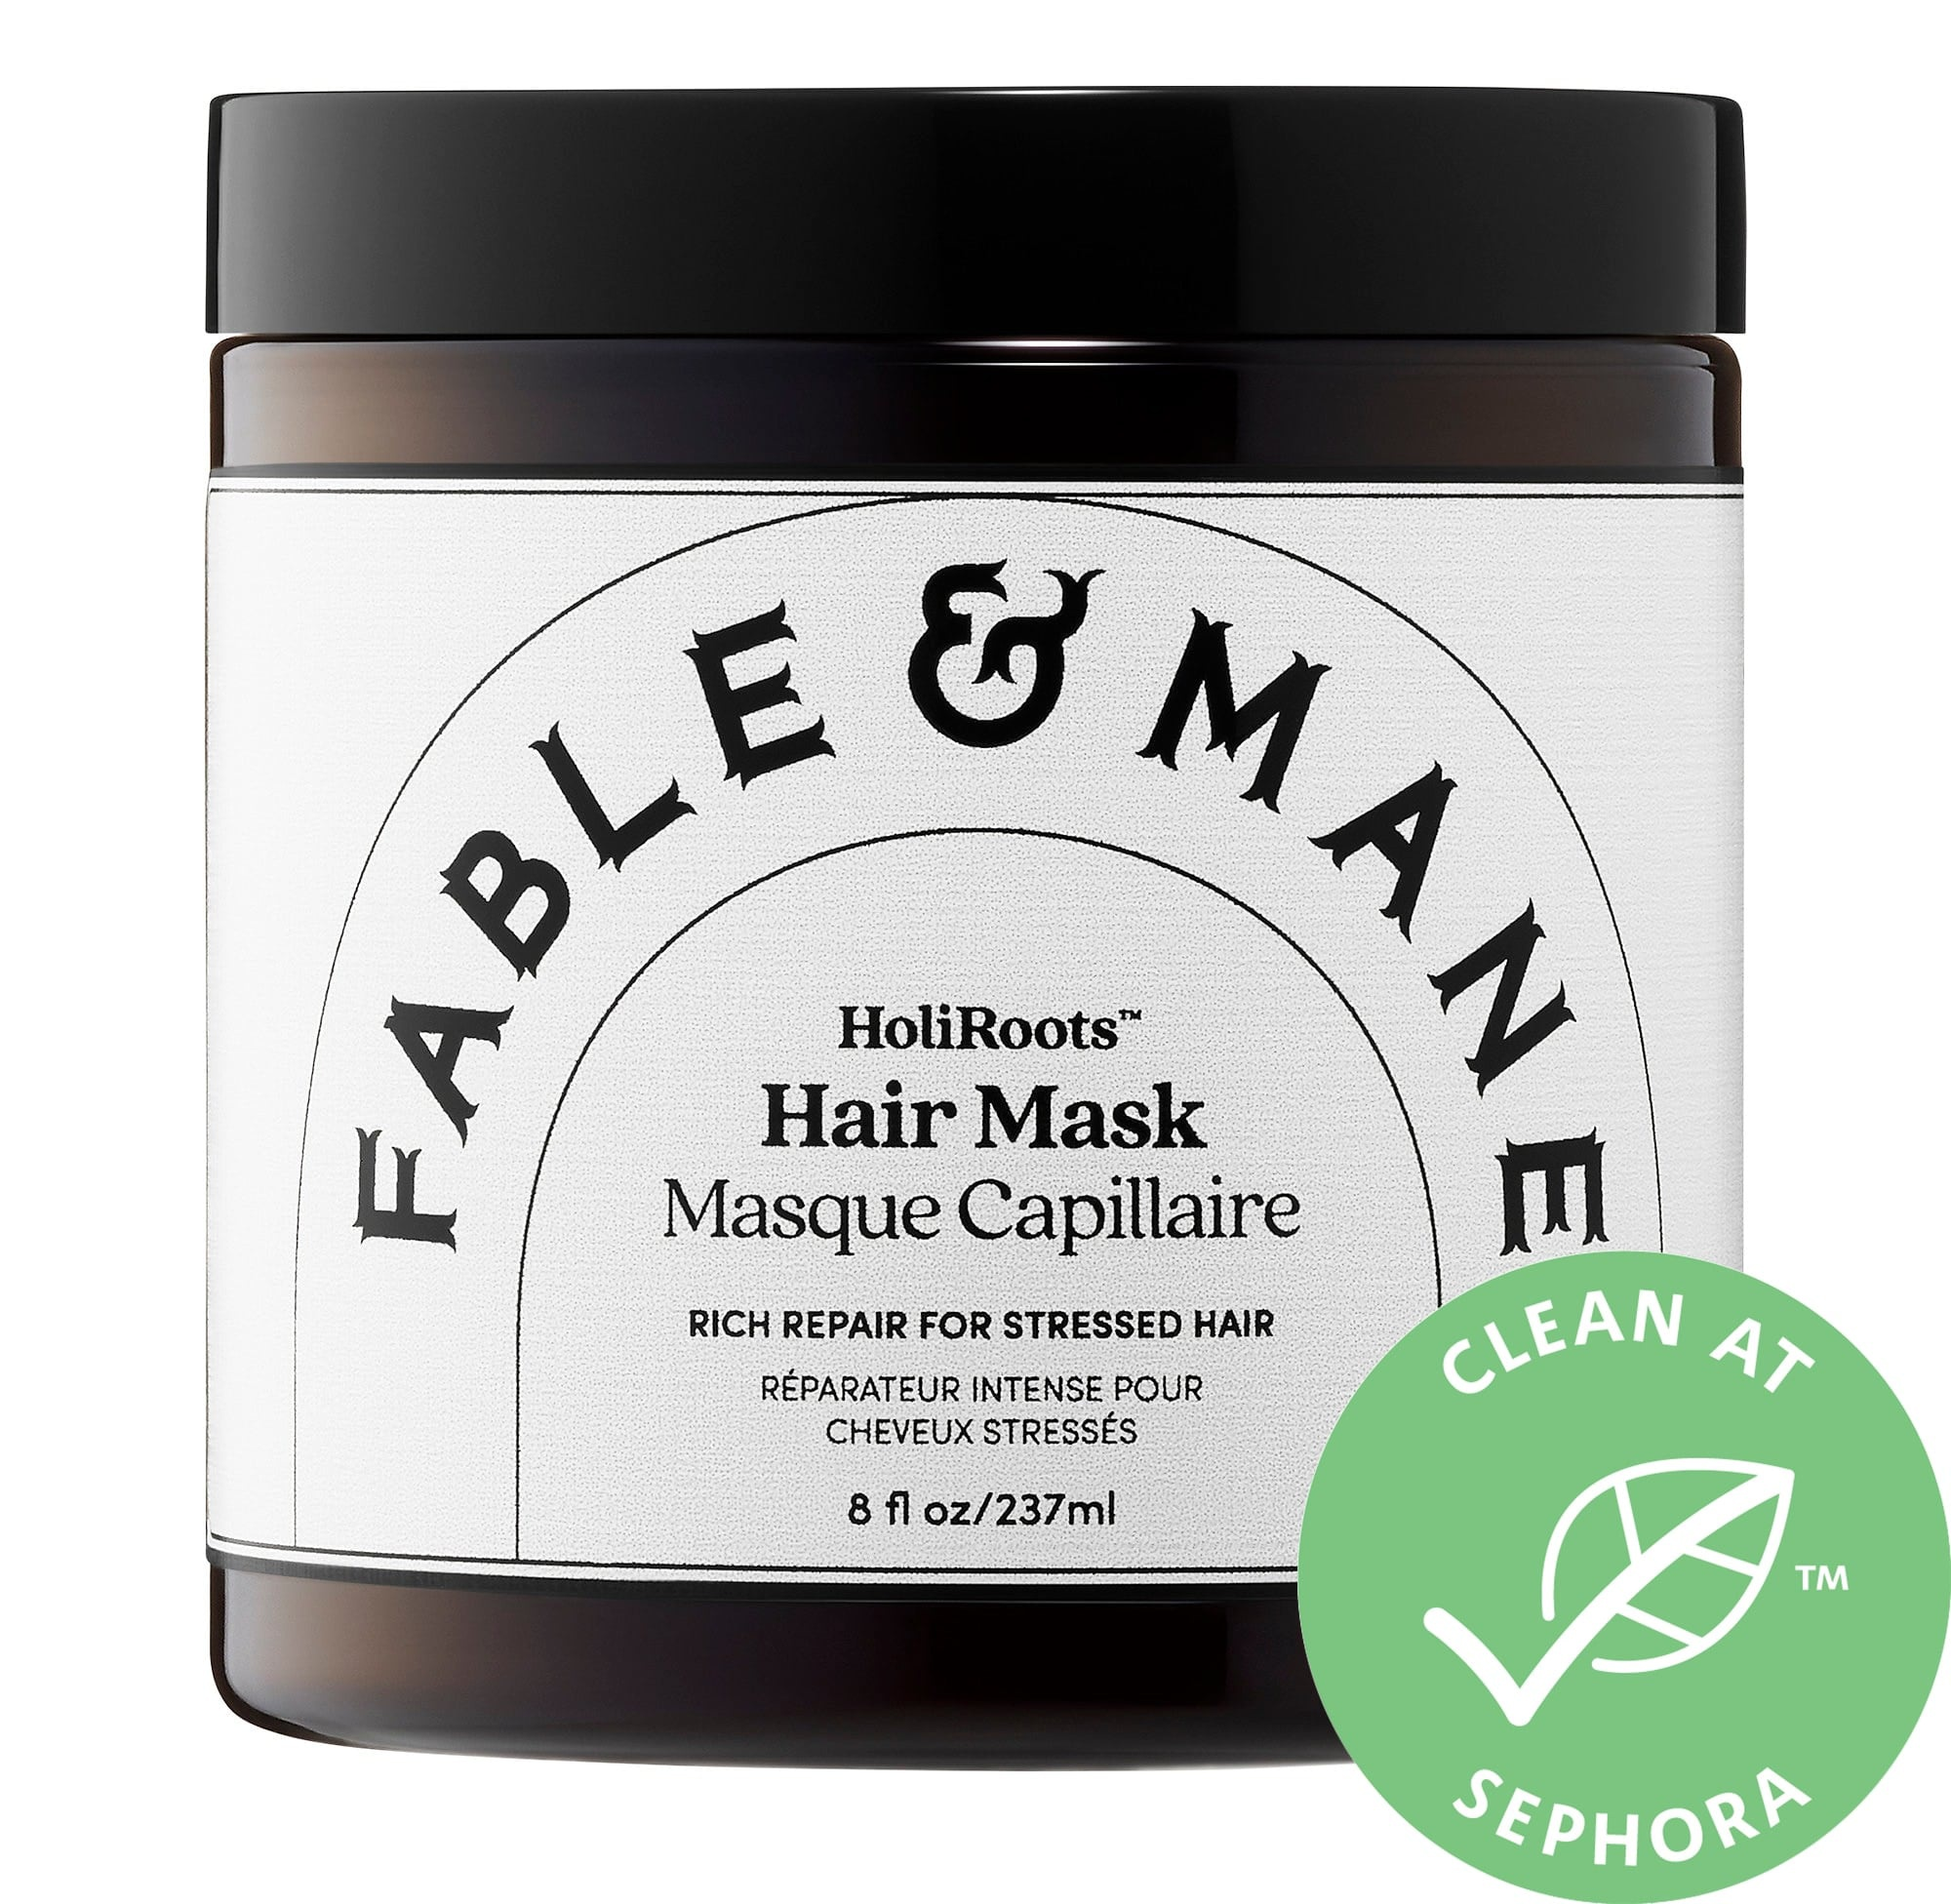 Fable and Mane Holiroots Hair Mask